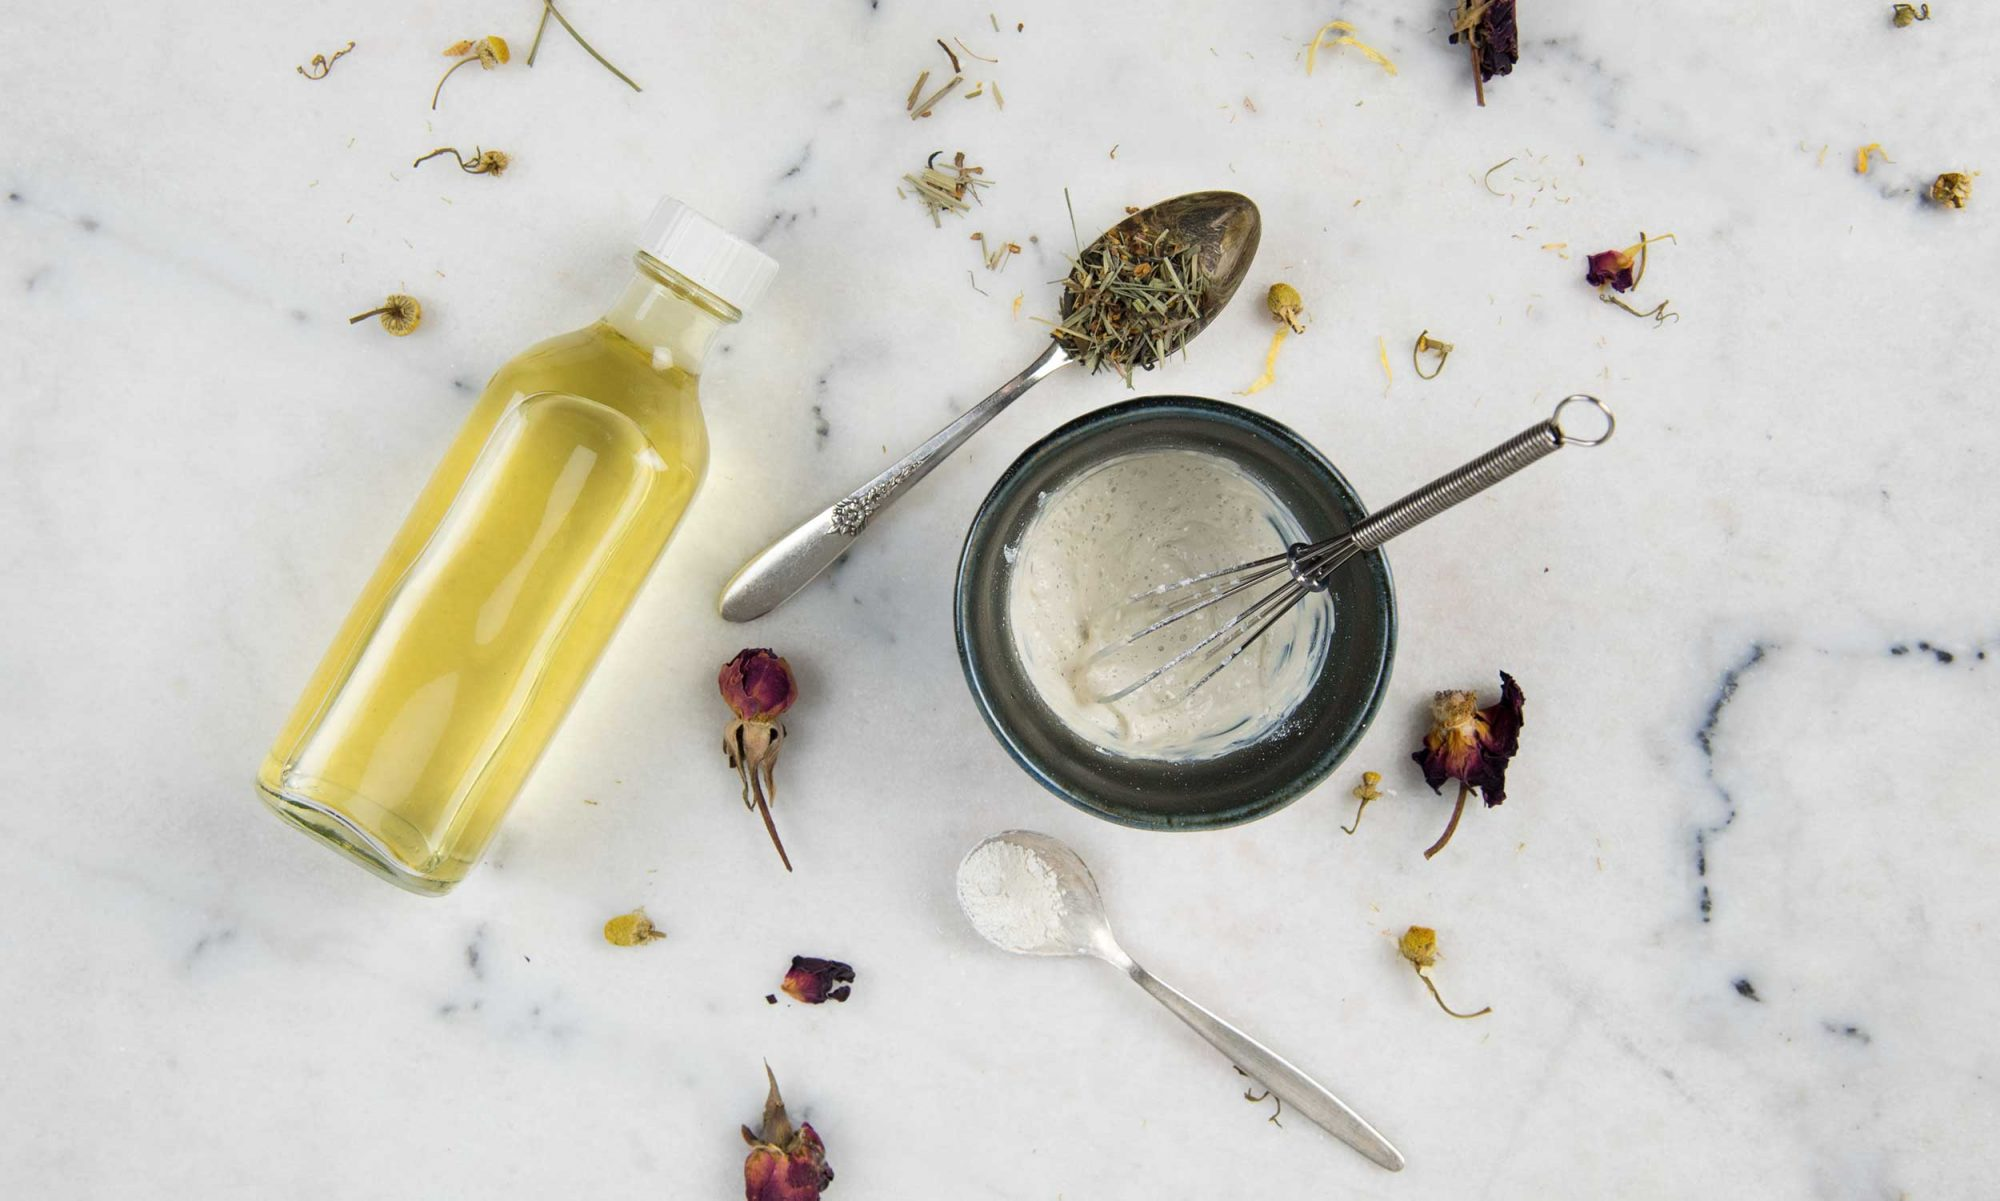 EC: This DIY Green Tea Face Mask and Toner Will Make Your Skin Glow